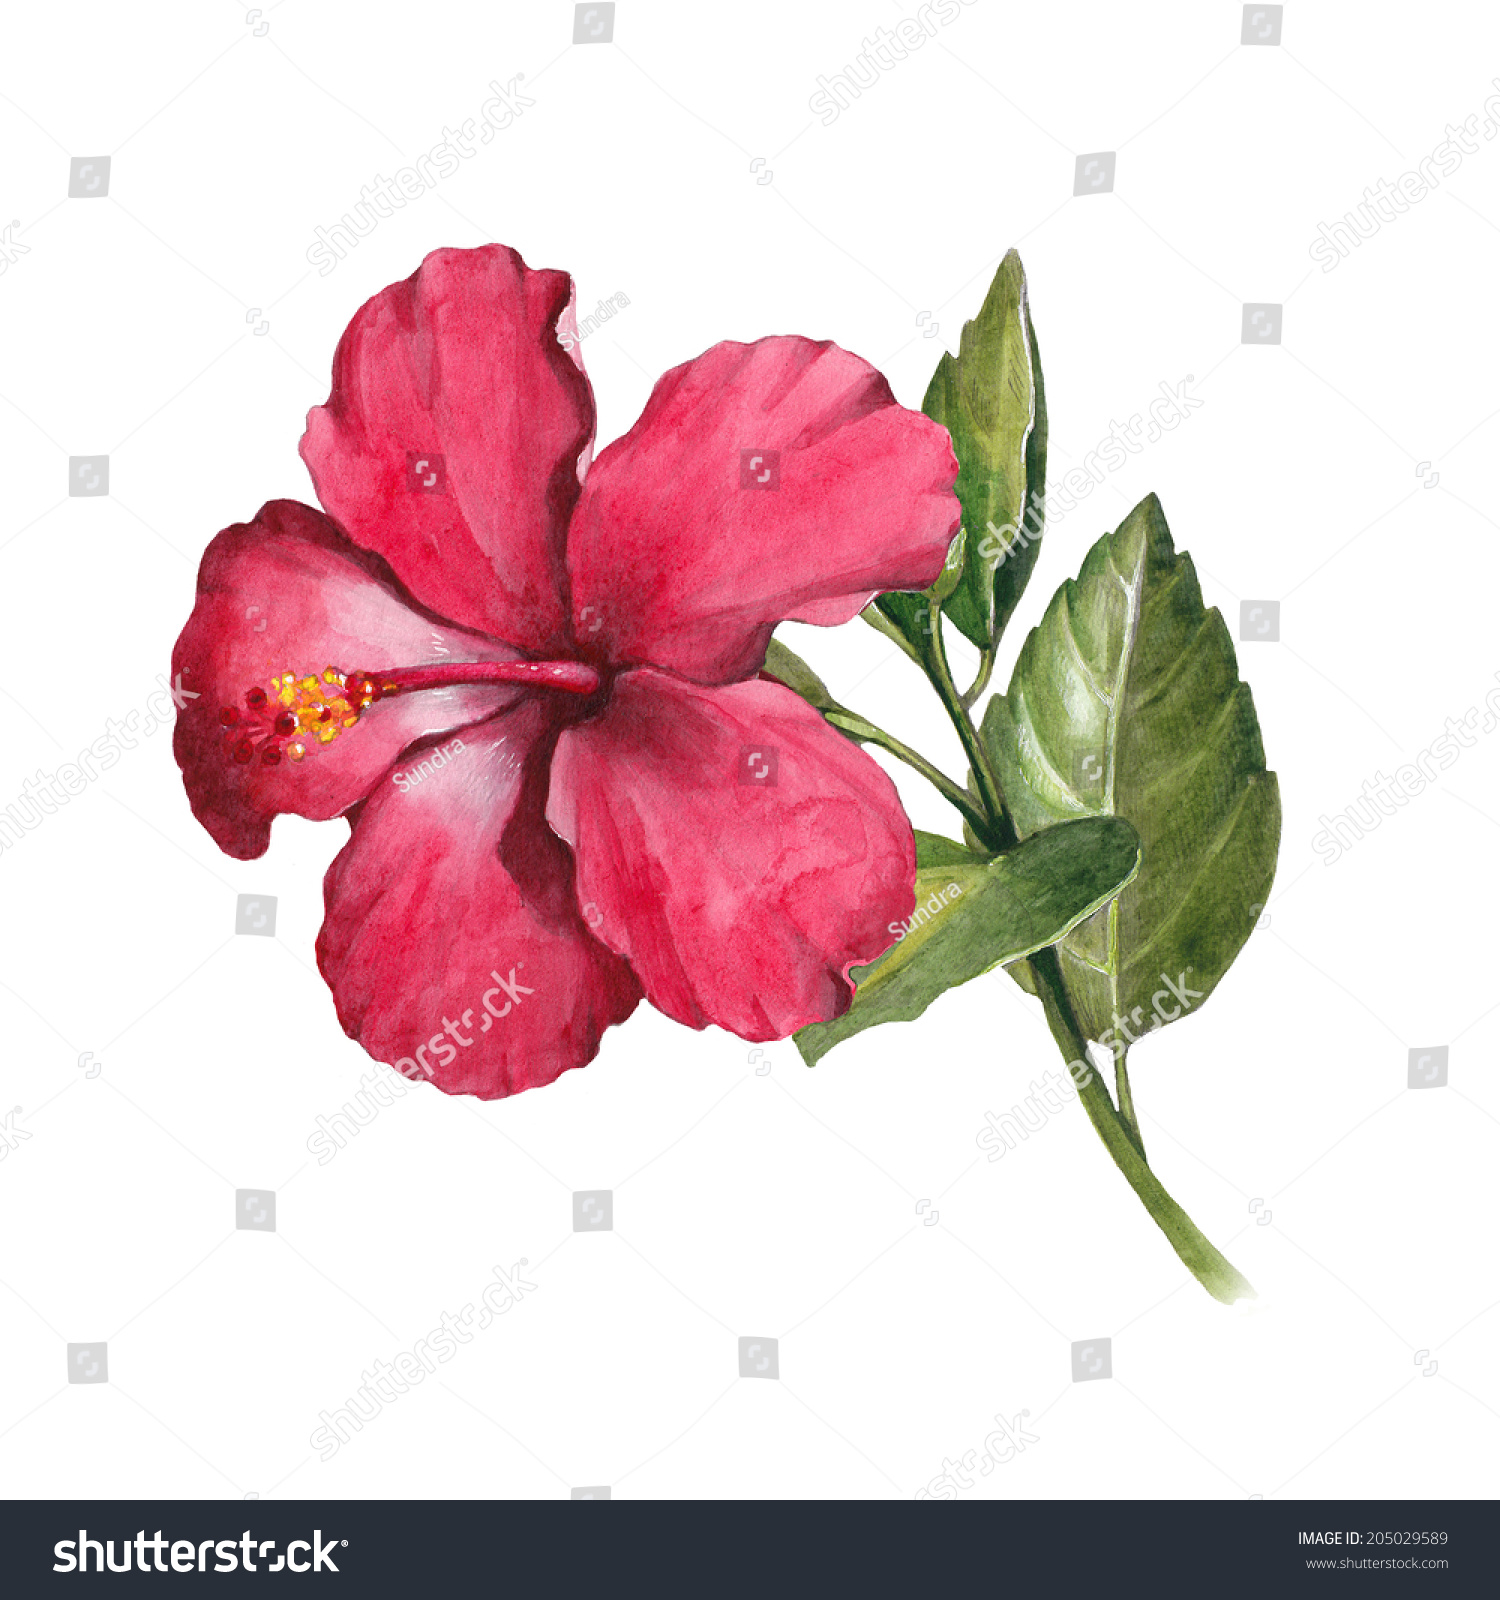 Watercolor Hibiscus Flower Illustration Stock Illustration 205029589